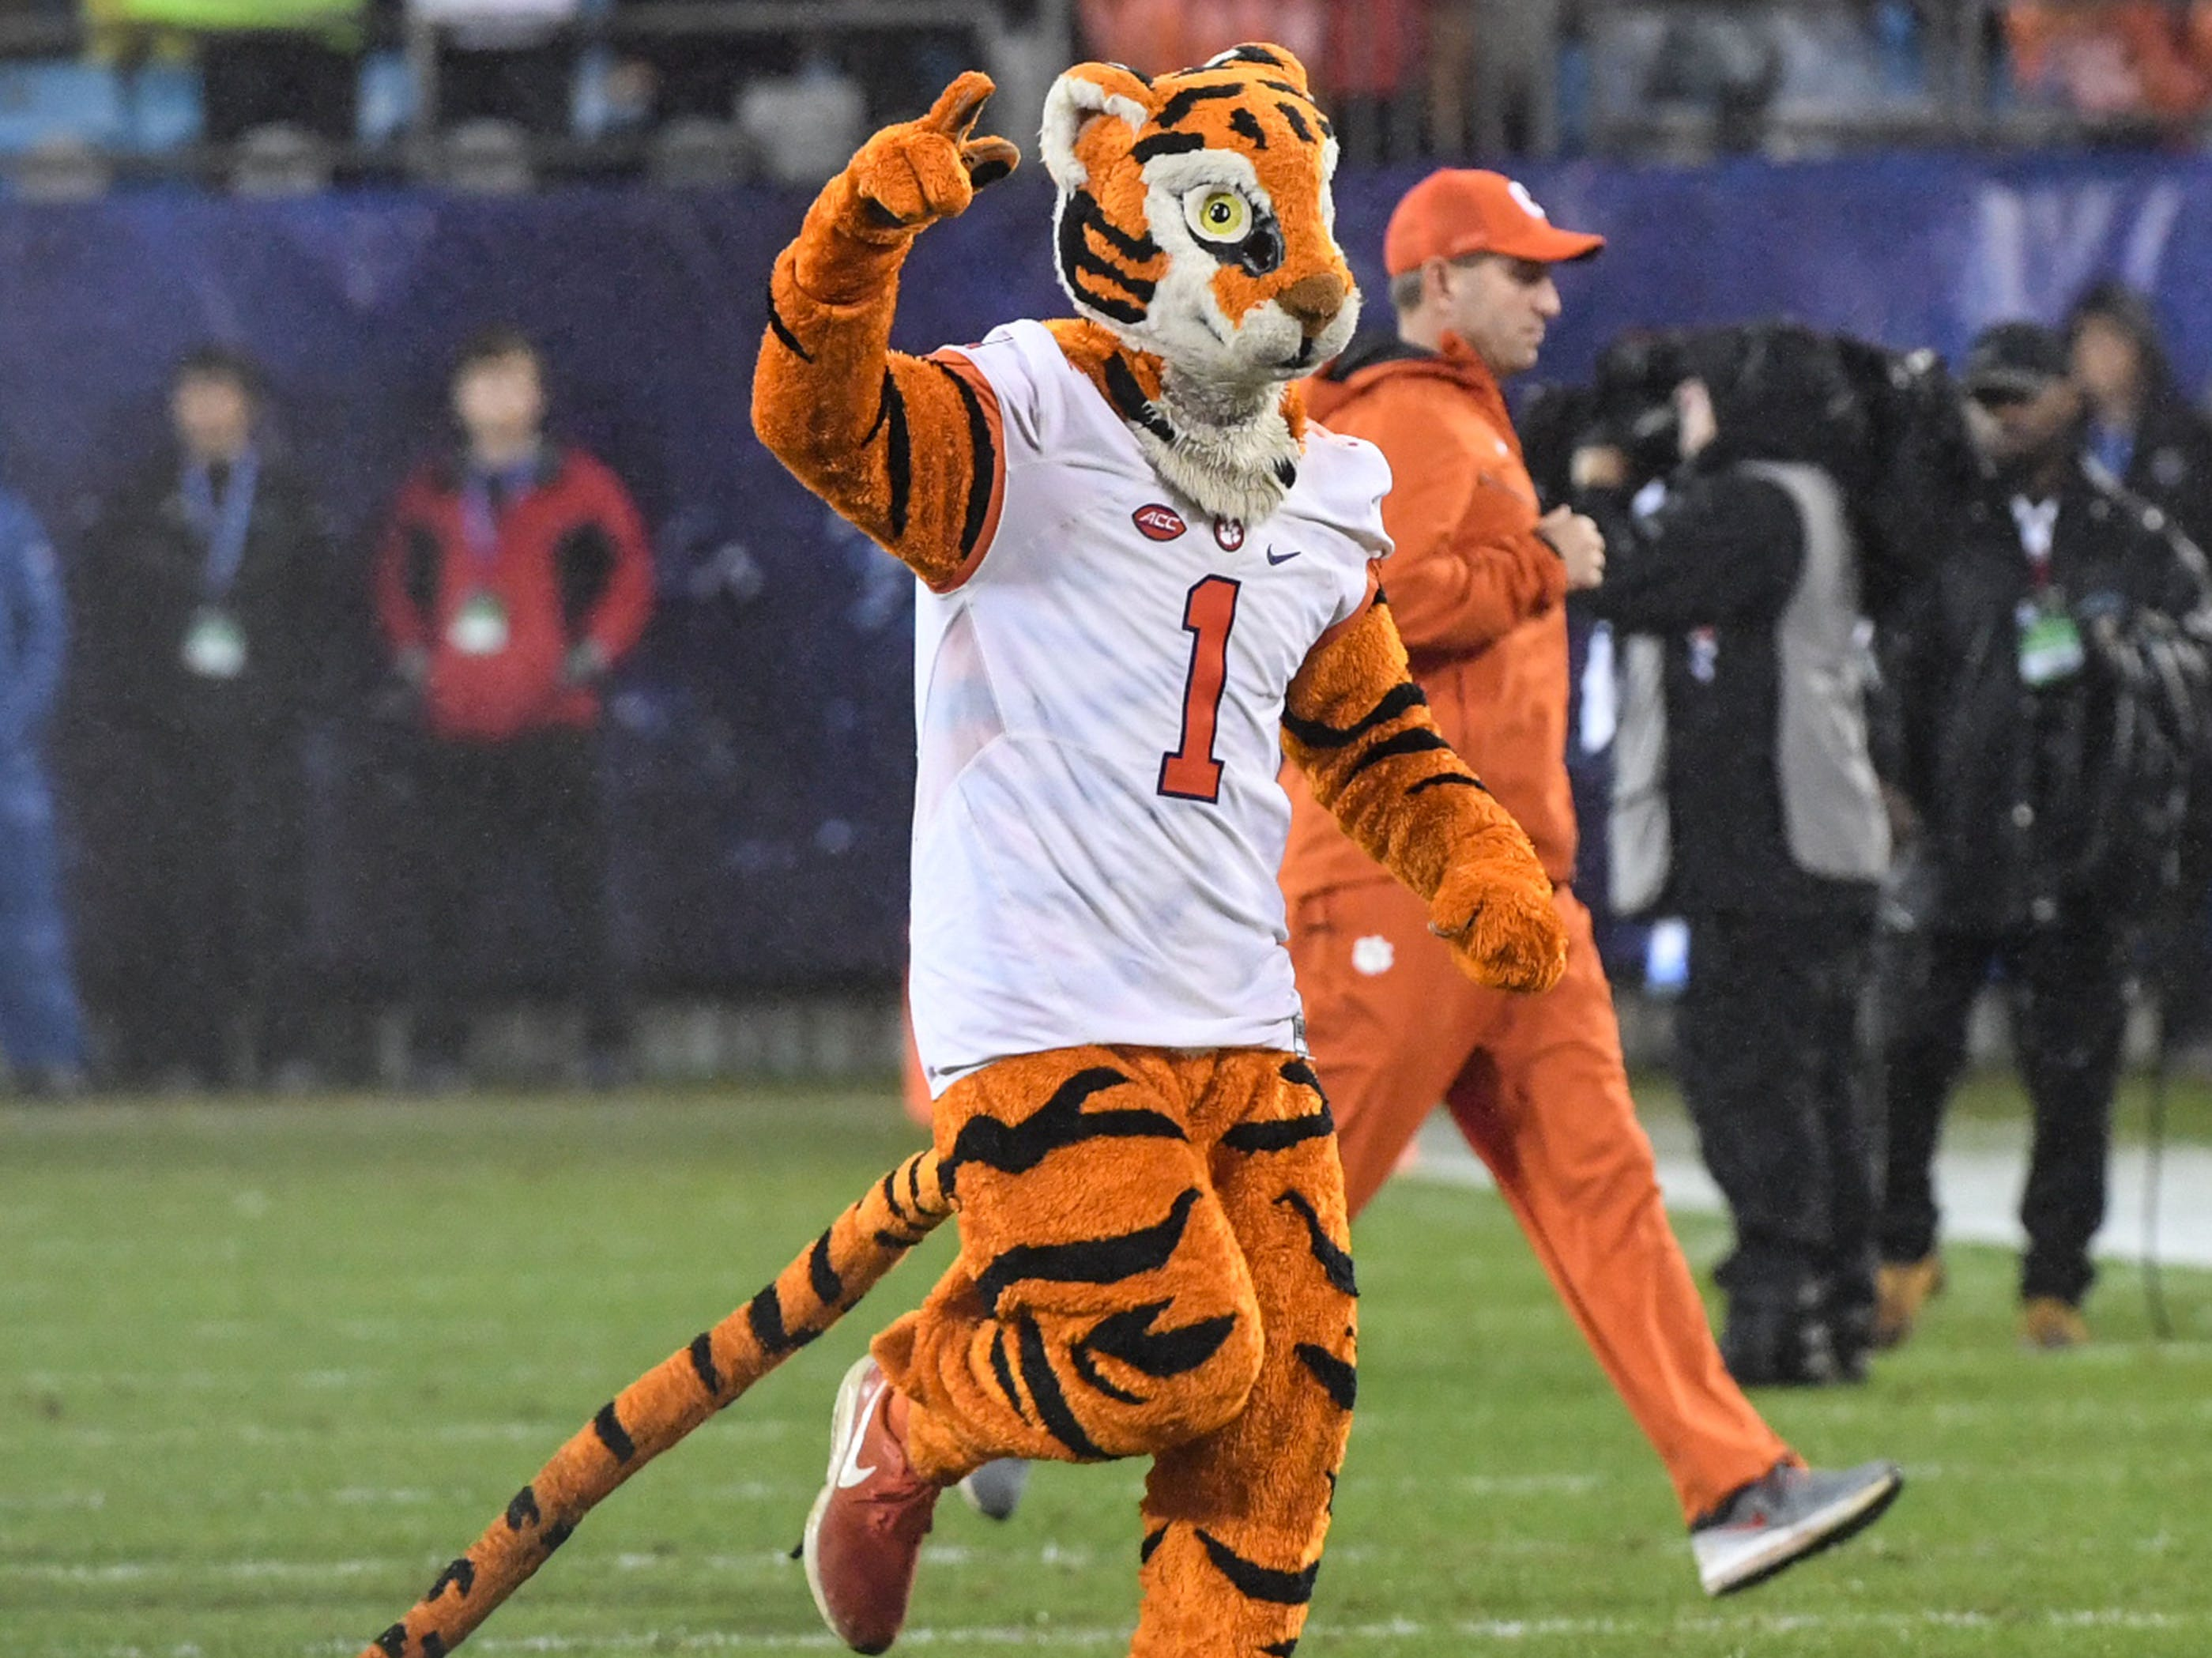 Clemson Head Coach Dabo Swinney and the Tiger run on the field before the game of the Dr. Pepper ACC football championship at Bank of America Stadium in Charlotte, N.C. on Saturday, December 1, 2018.